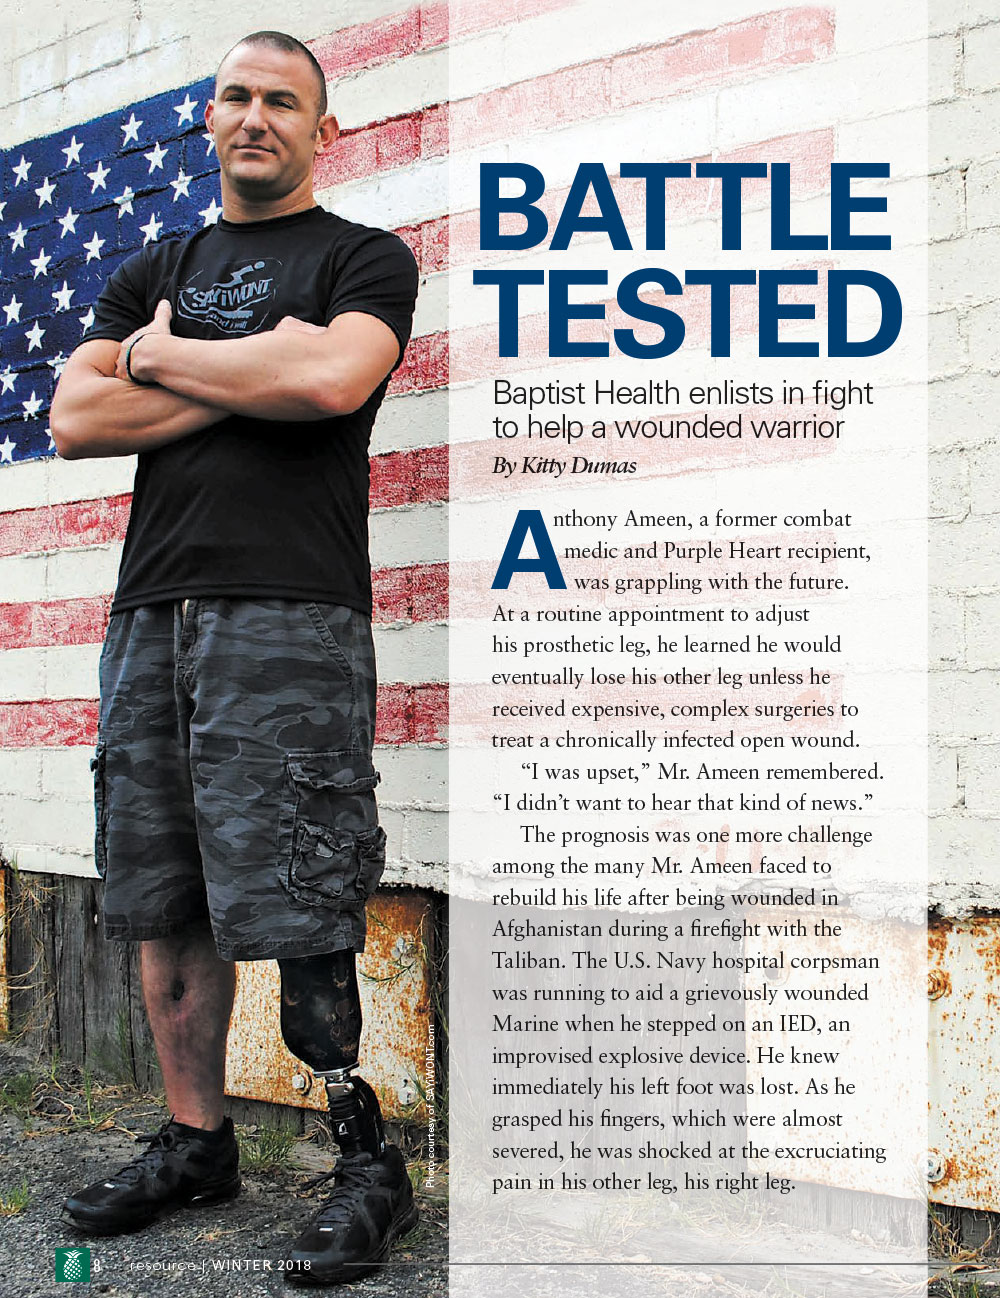 Battle Tested - Baptist Health Enlists in Fight to Help a Wounded Warrior